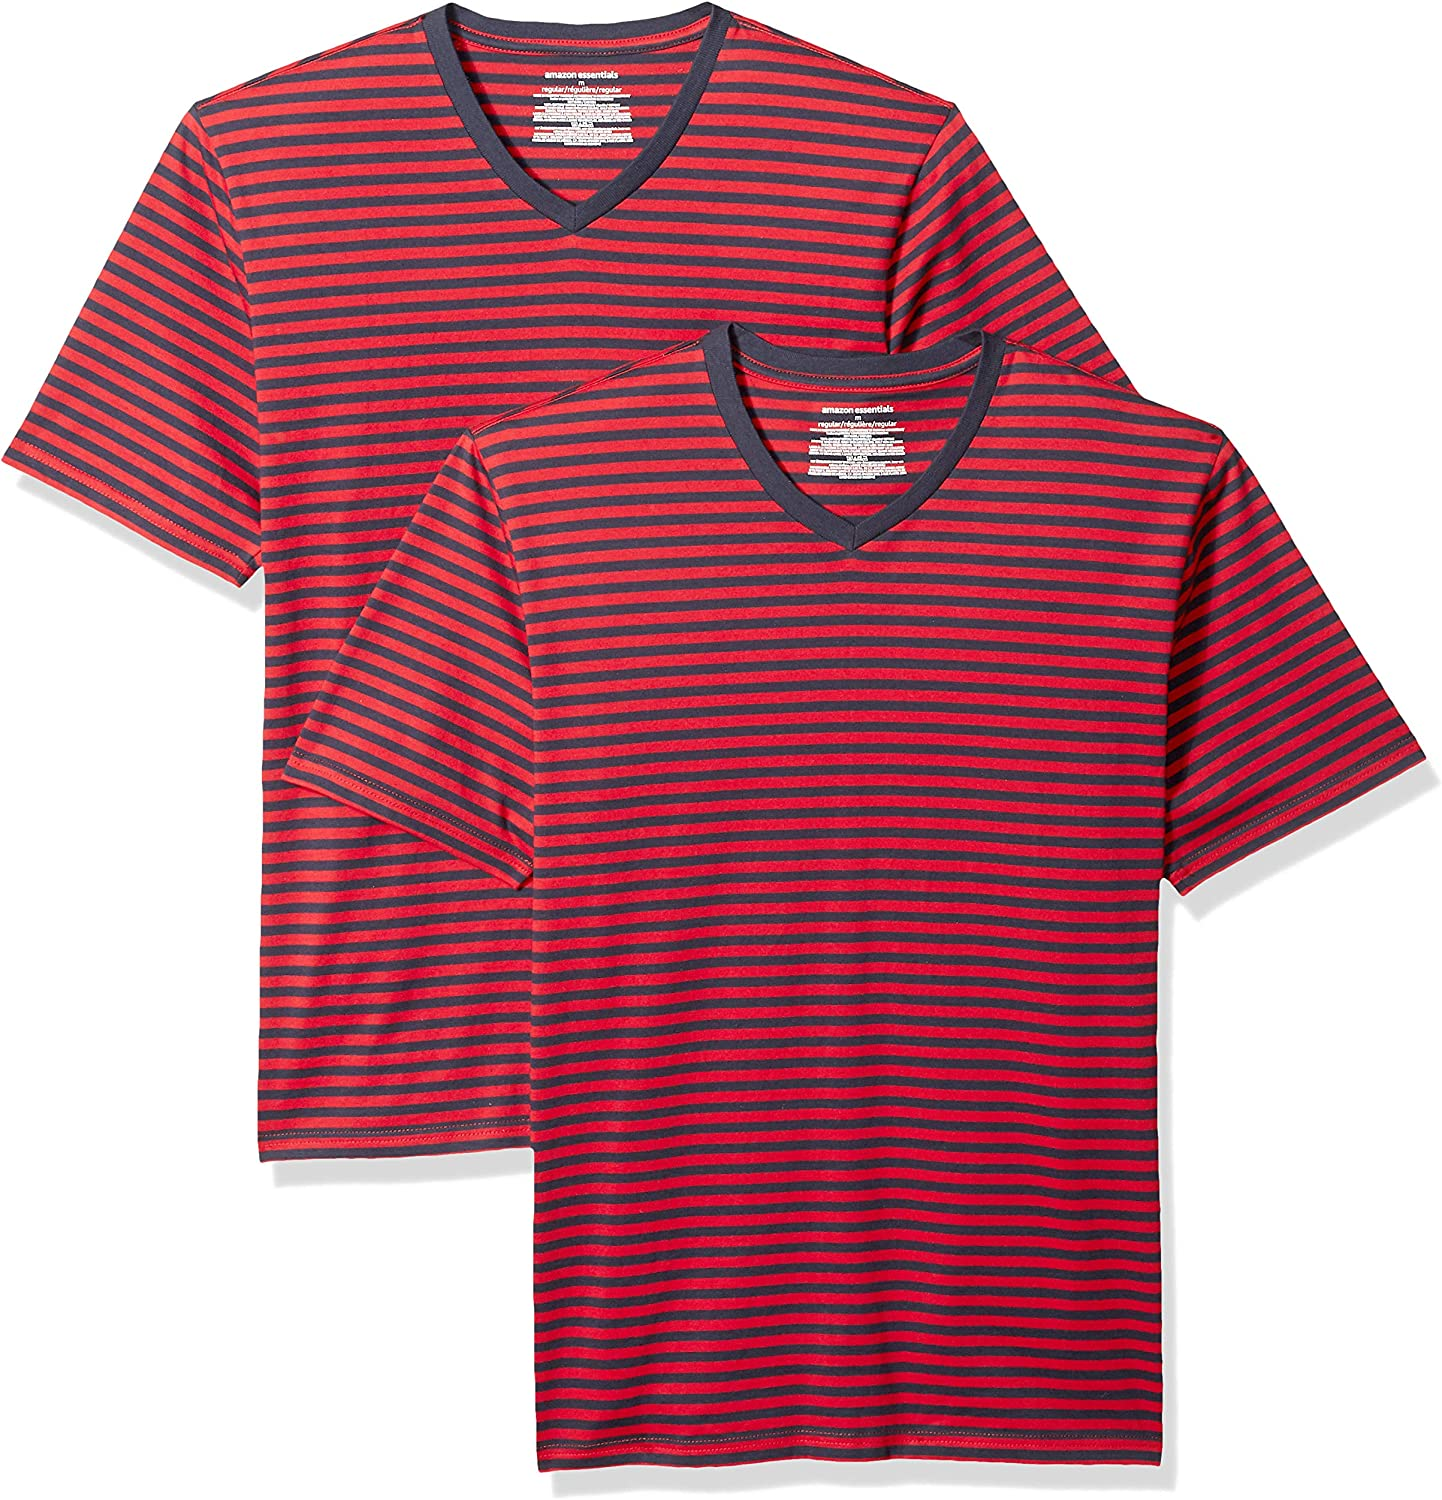 Essentials Men's Loose-fit Short-Sleeve Stripe V-Neck T-Shirts: Clothing